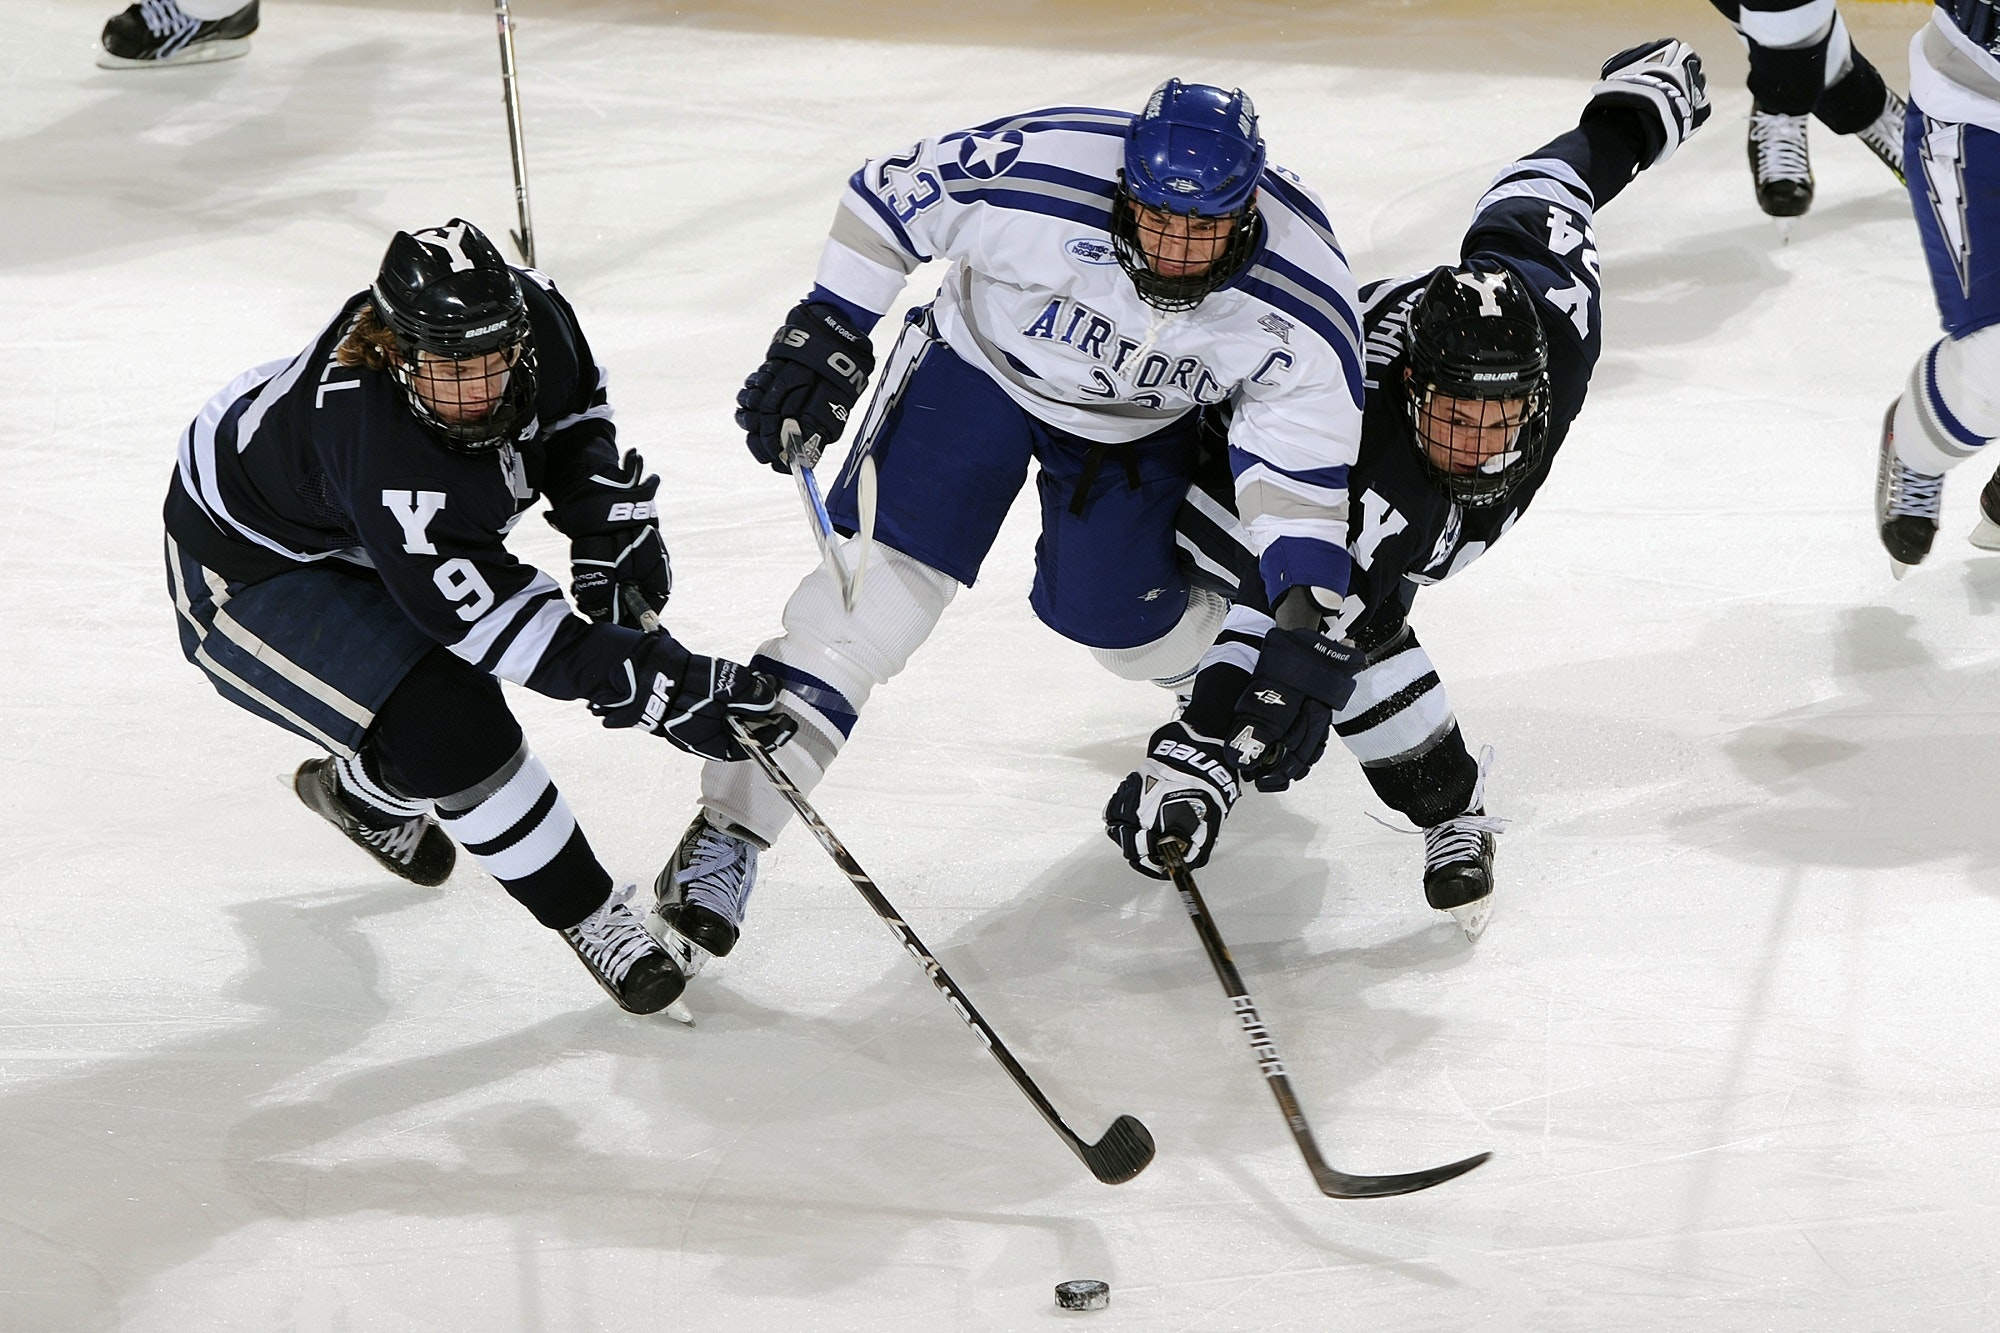 Men's in Blue and White Jersey Shirt Playing Hockey, Action, Team, Sticks, Sport, HQ Photo